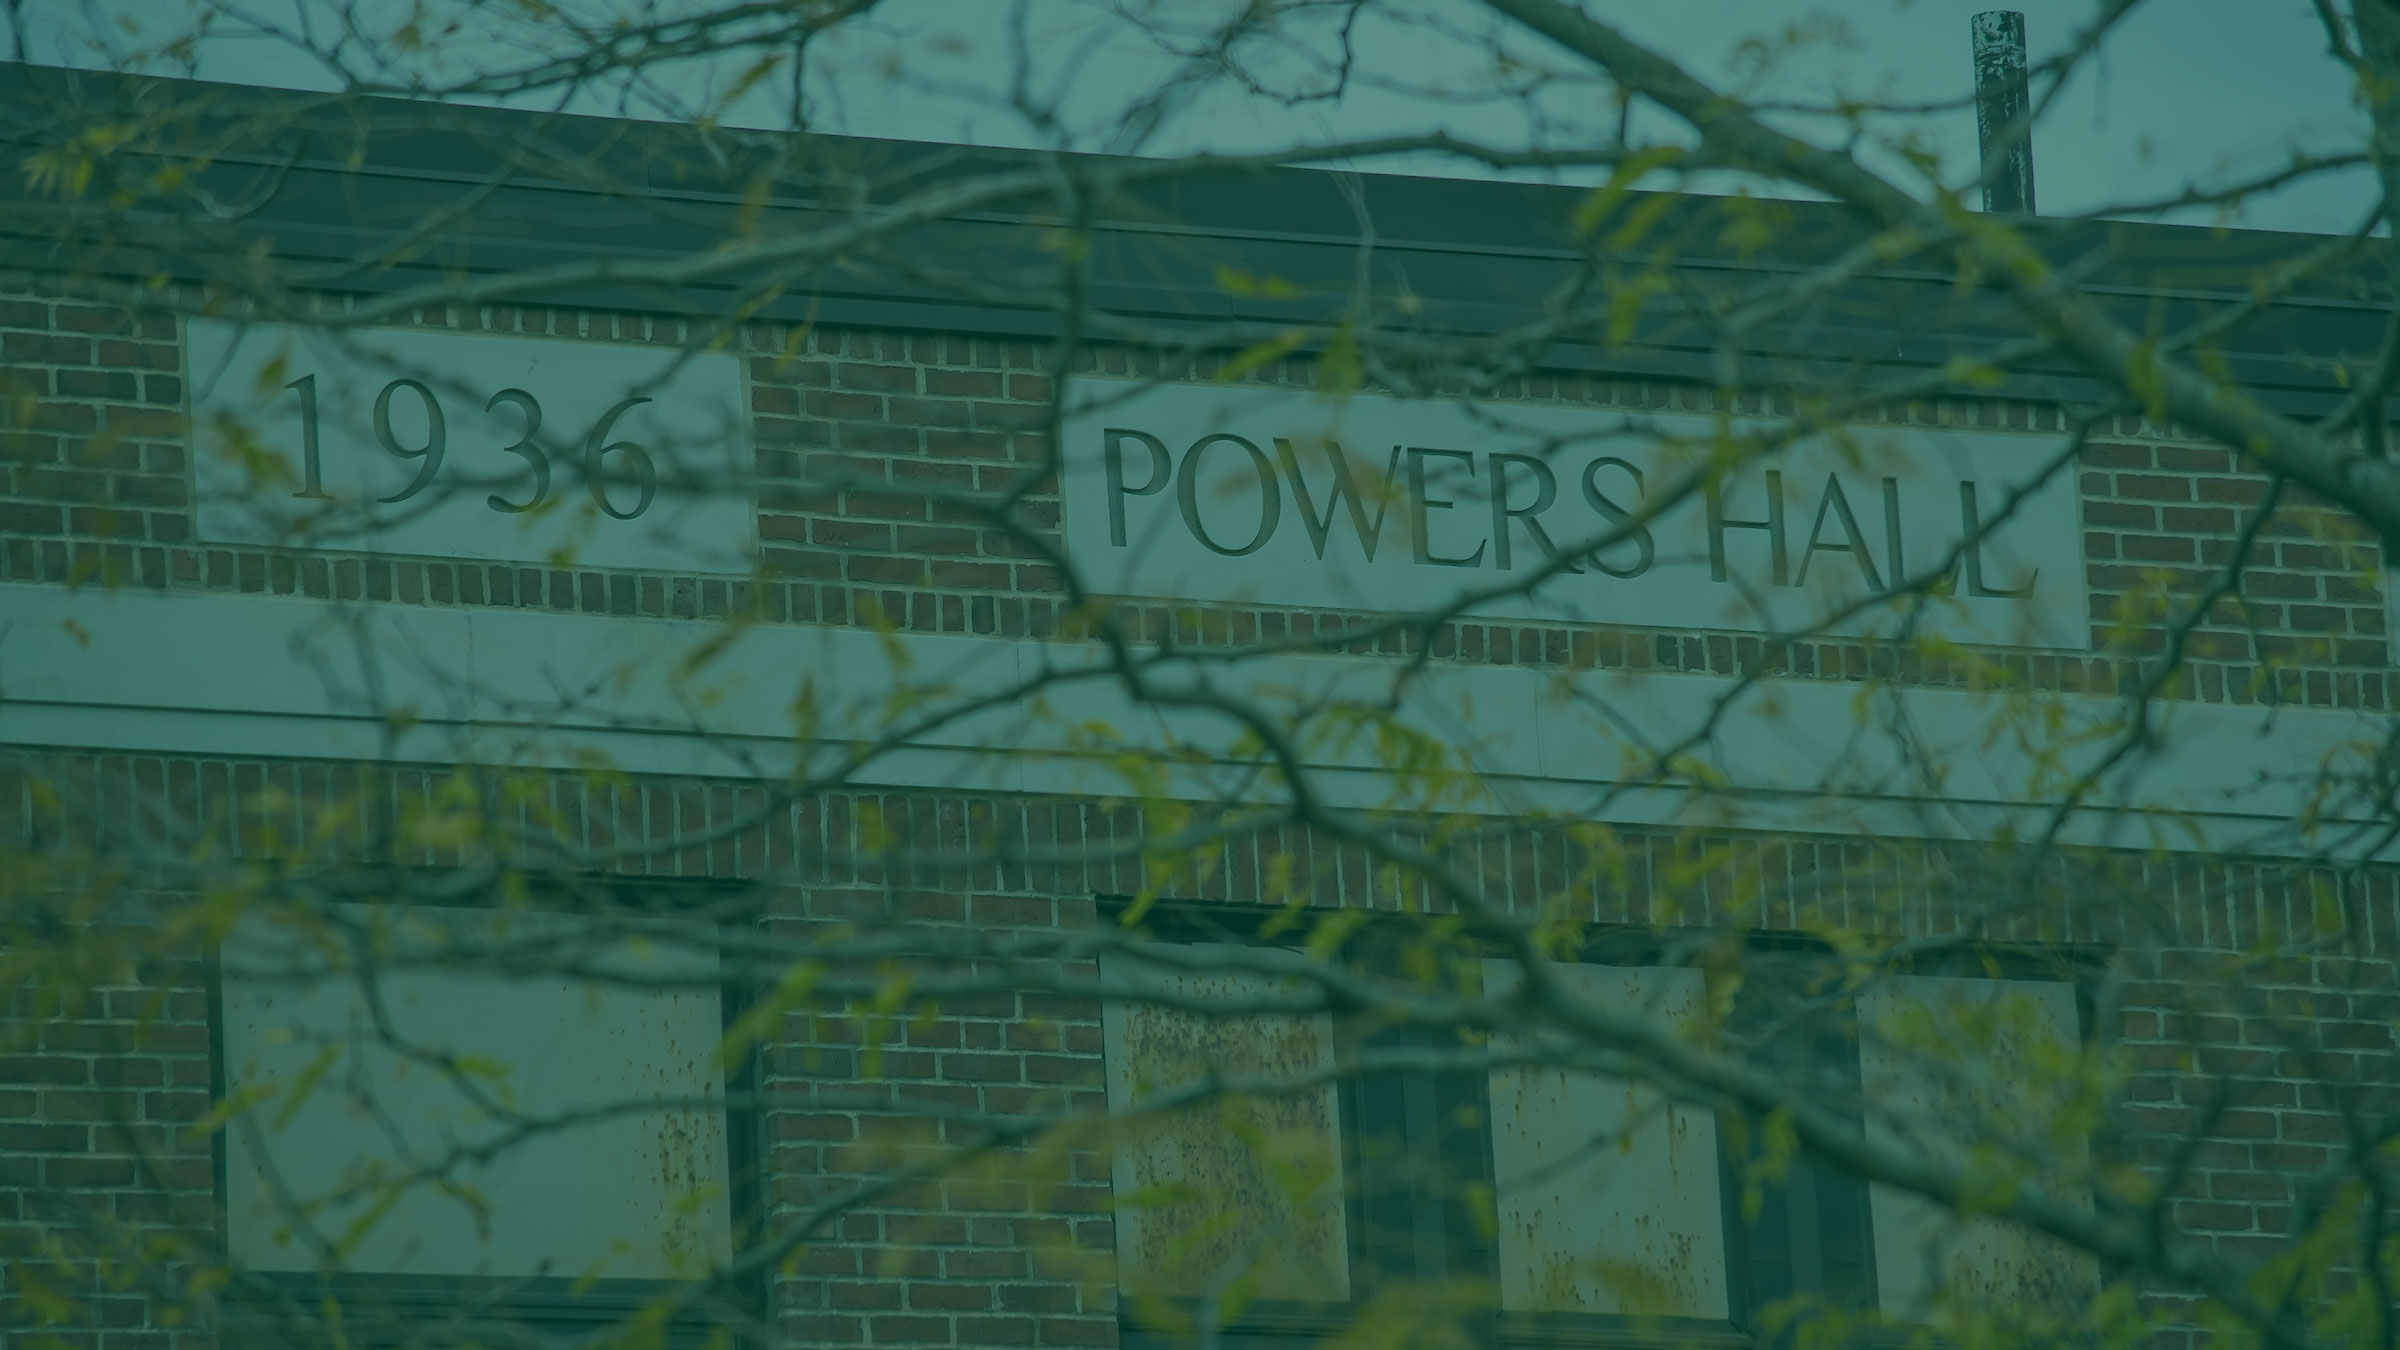 Words engraved in side of a building: 1936 Powers Hall